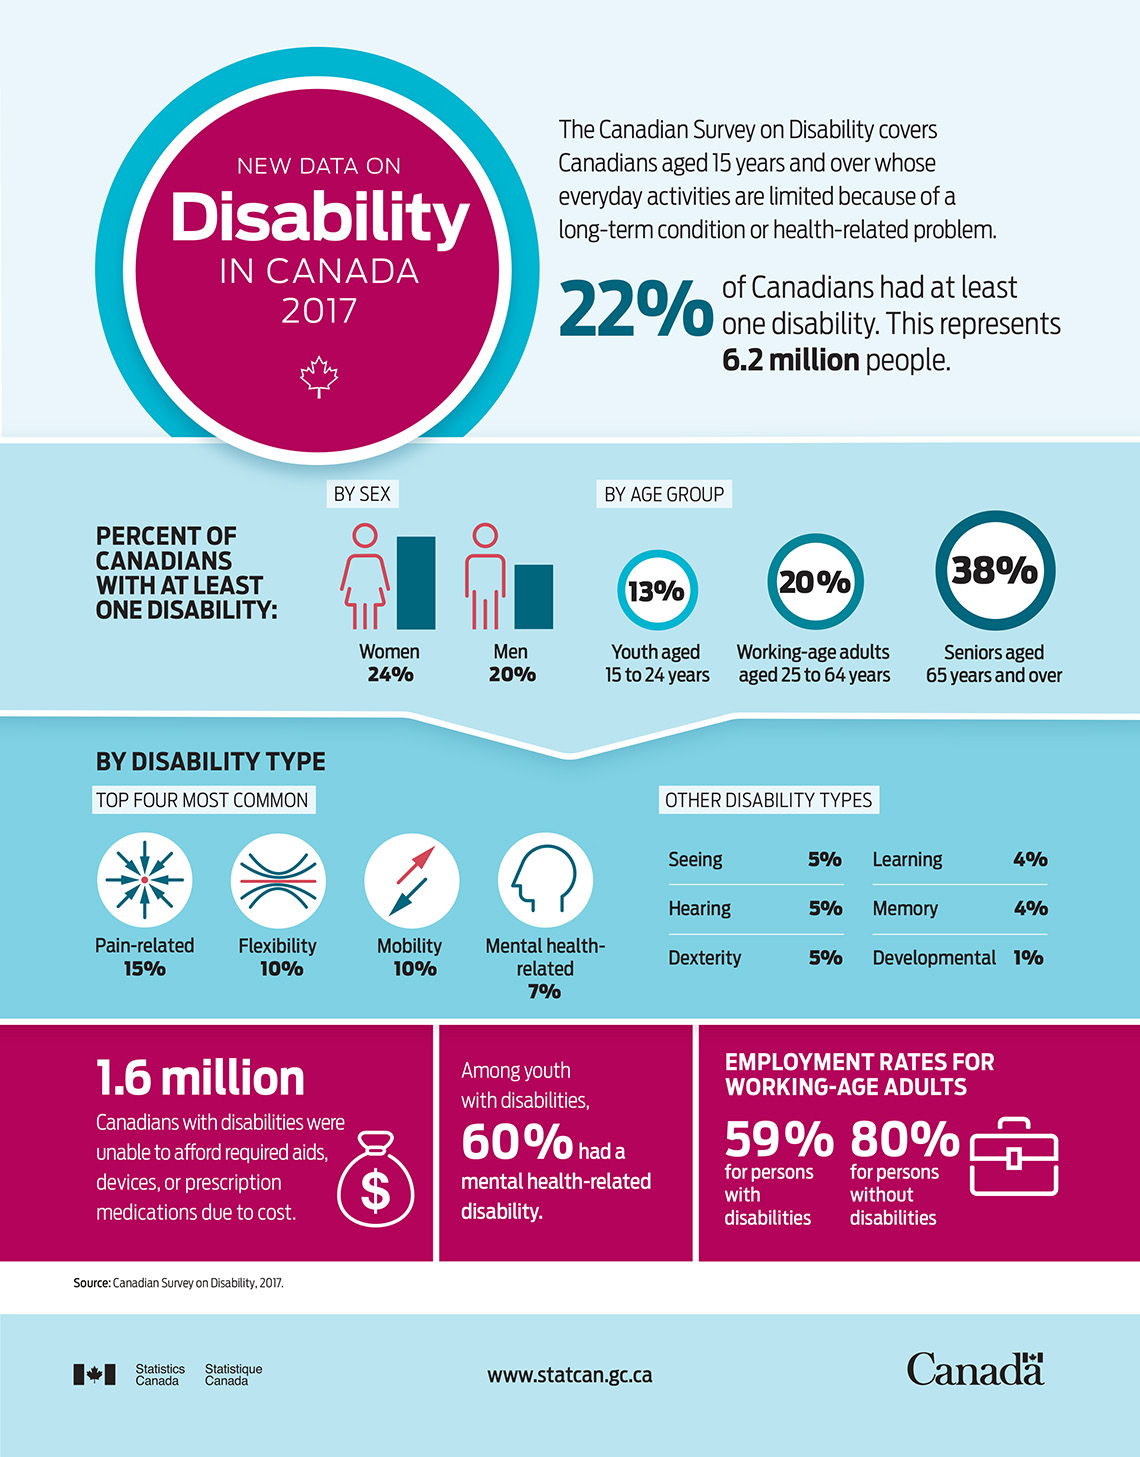 Infographic: New Data on Disability in Canada, 2017